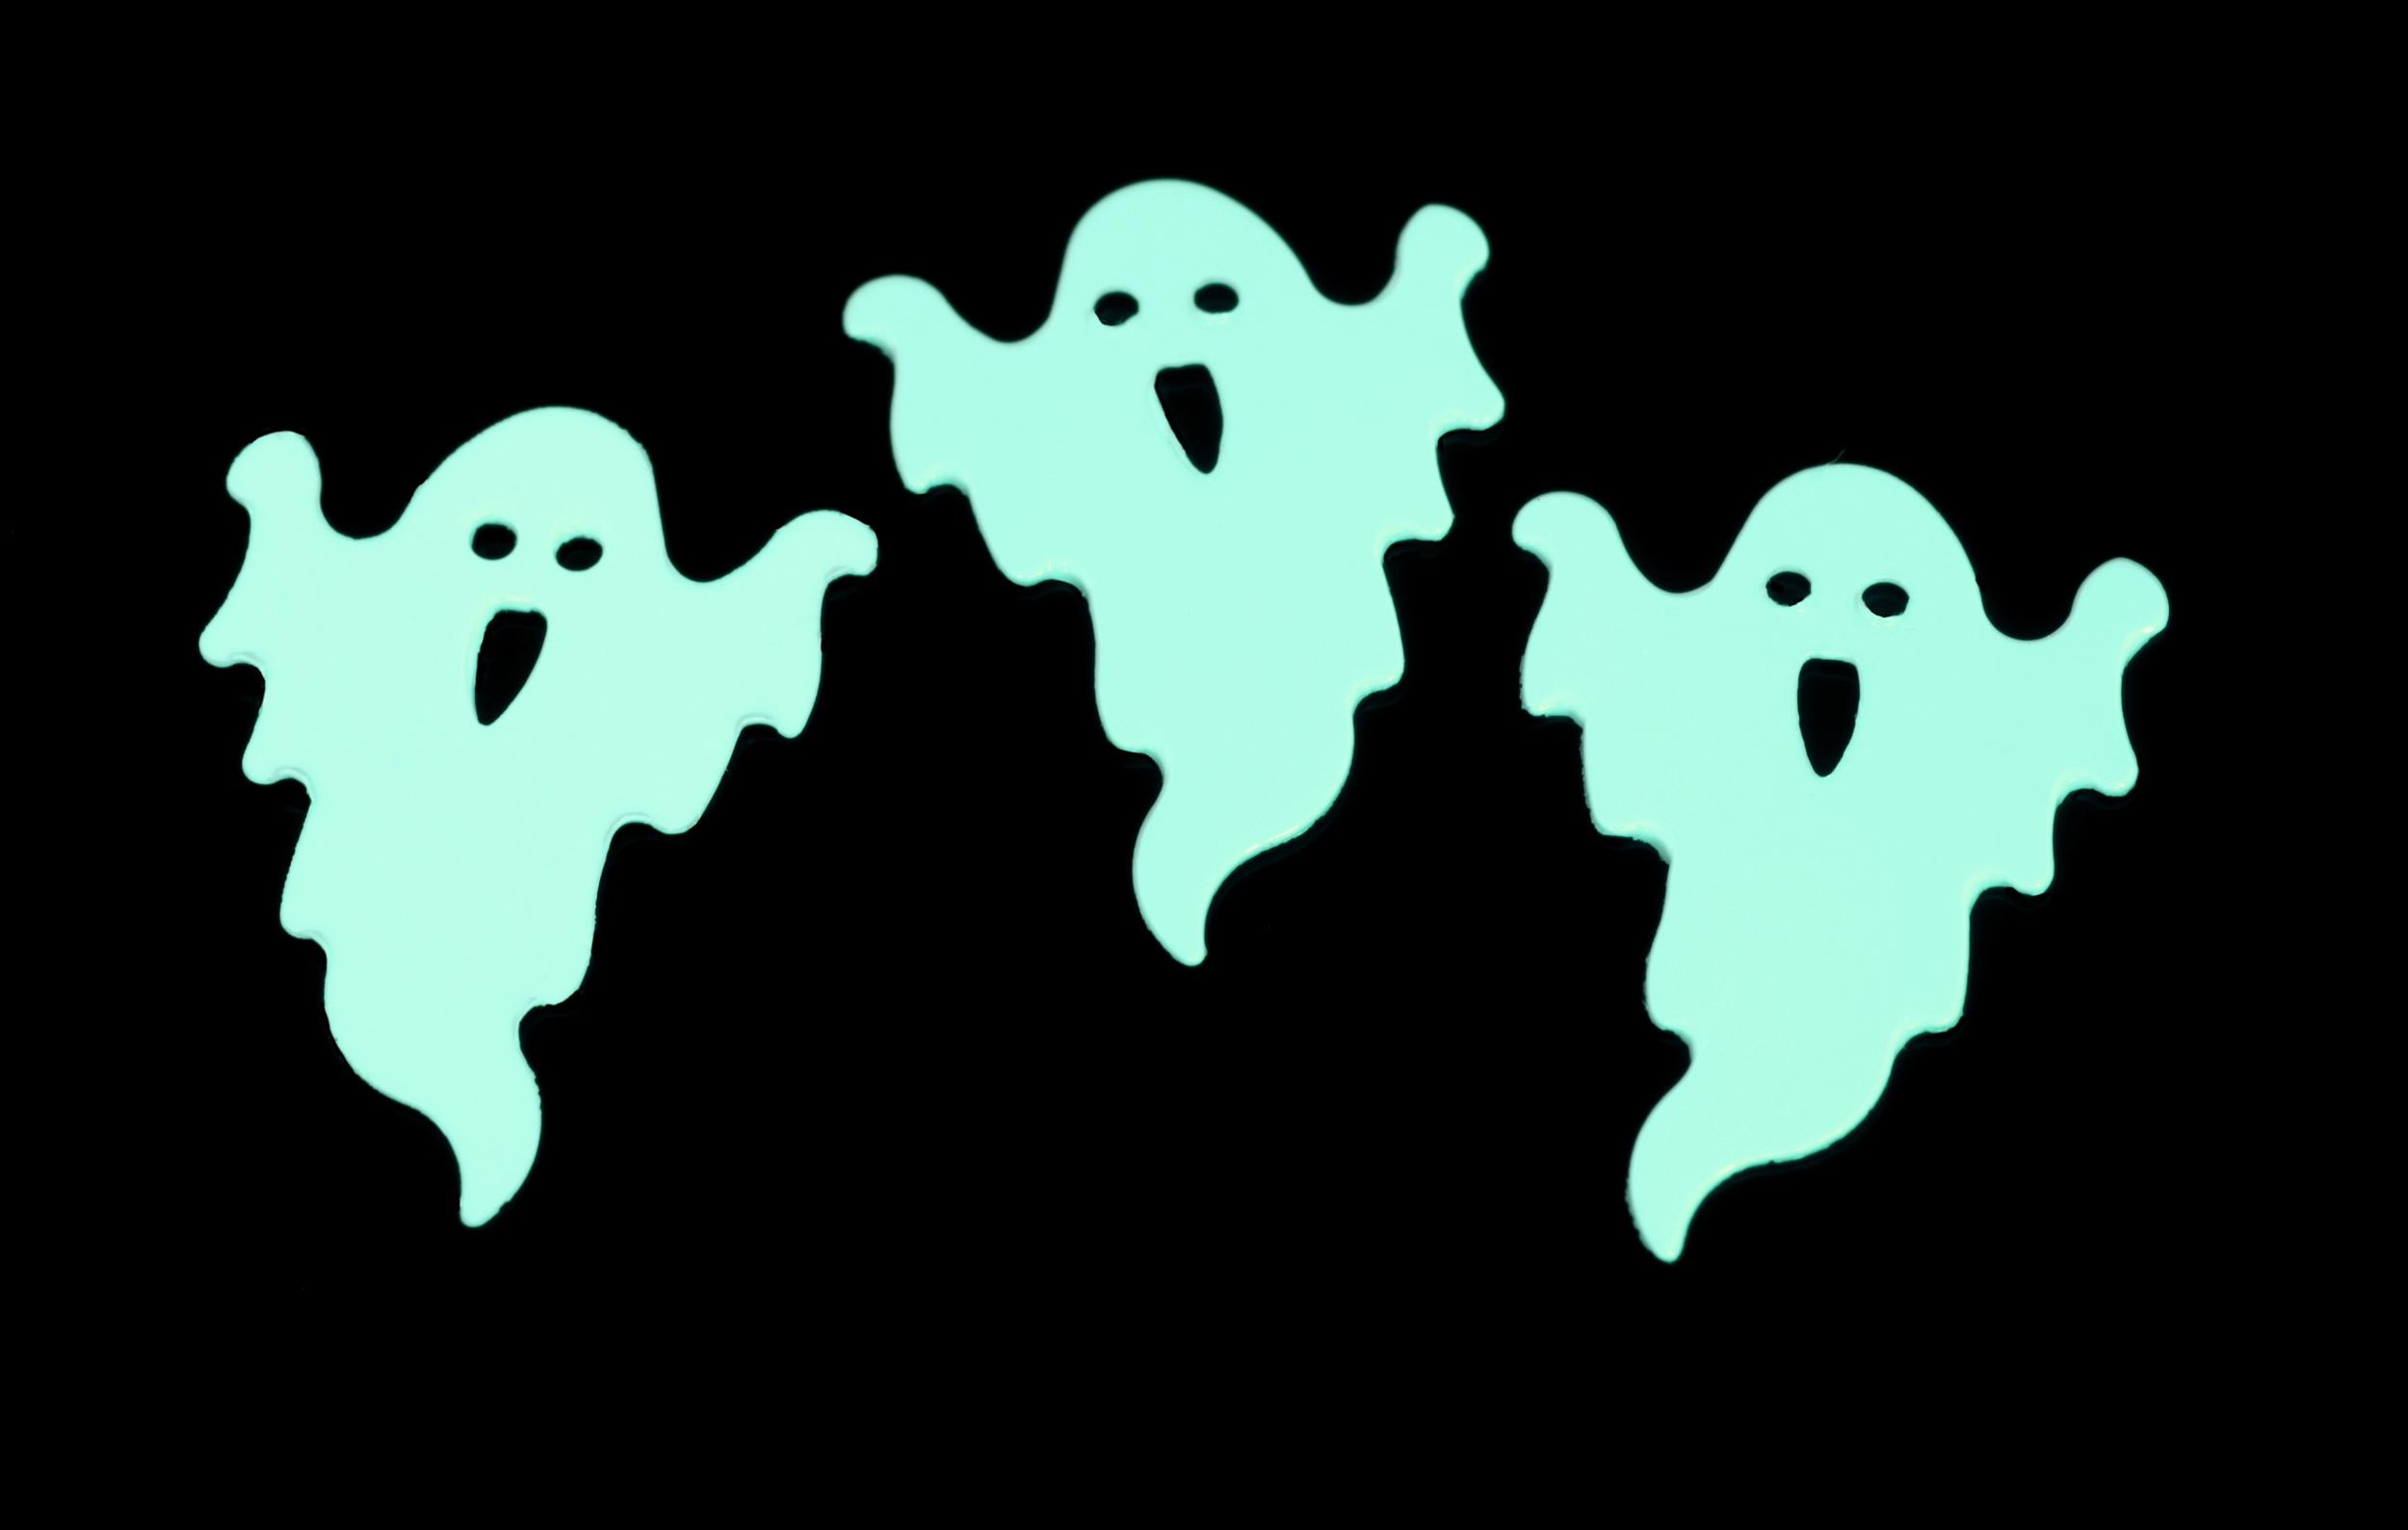 Free Stock Photo 1441-glowing green ghosts | freeimageslive